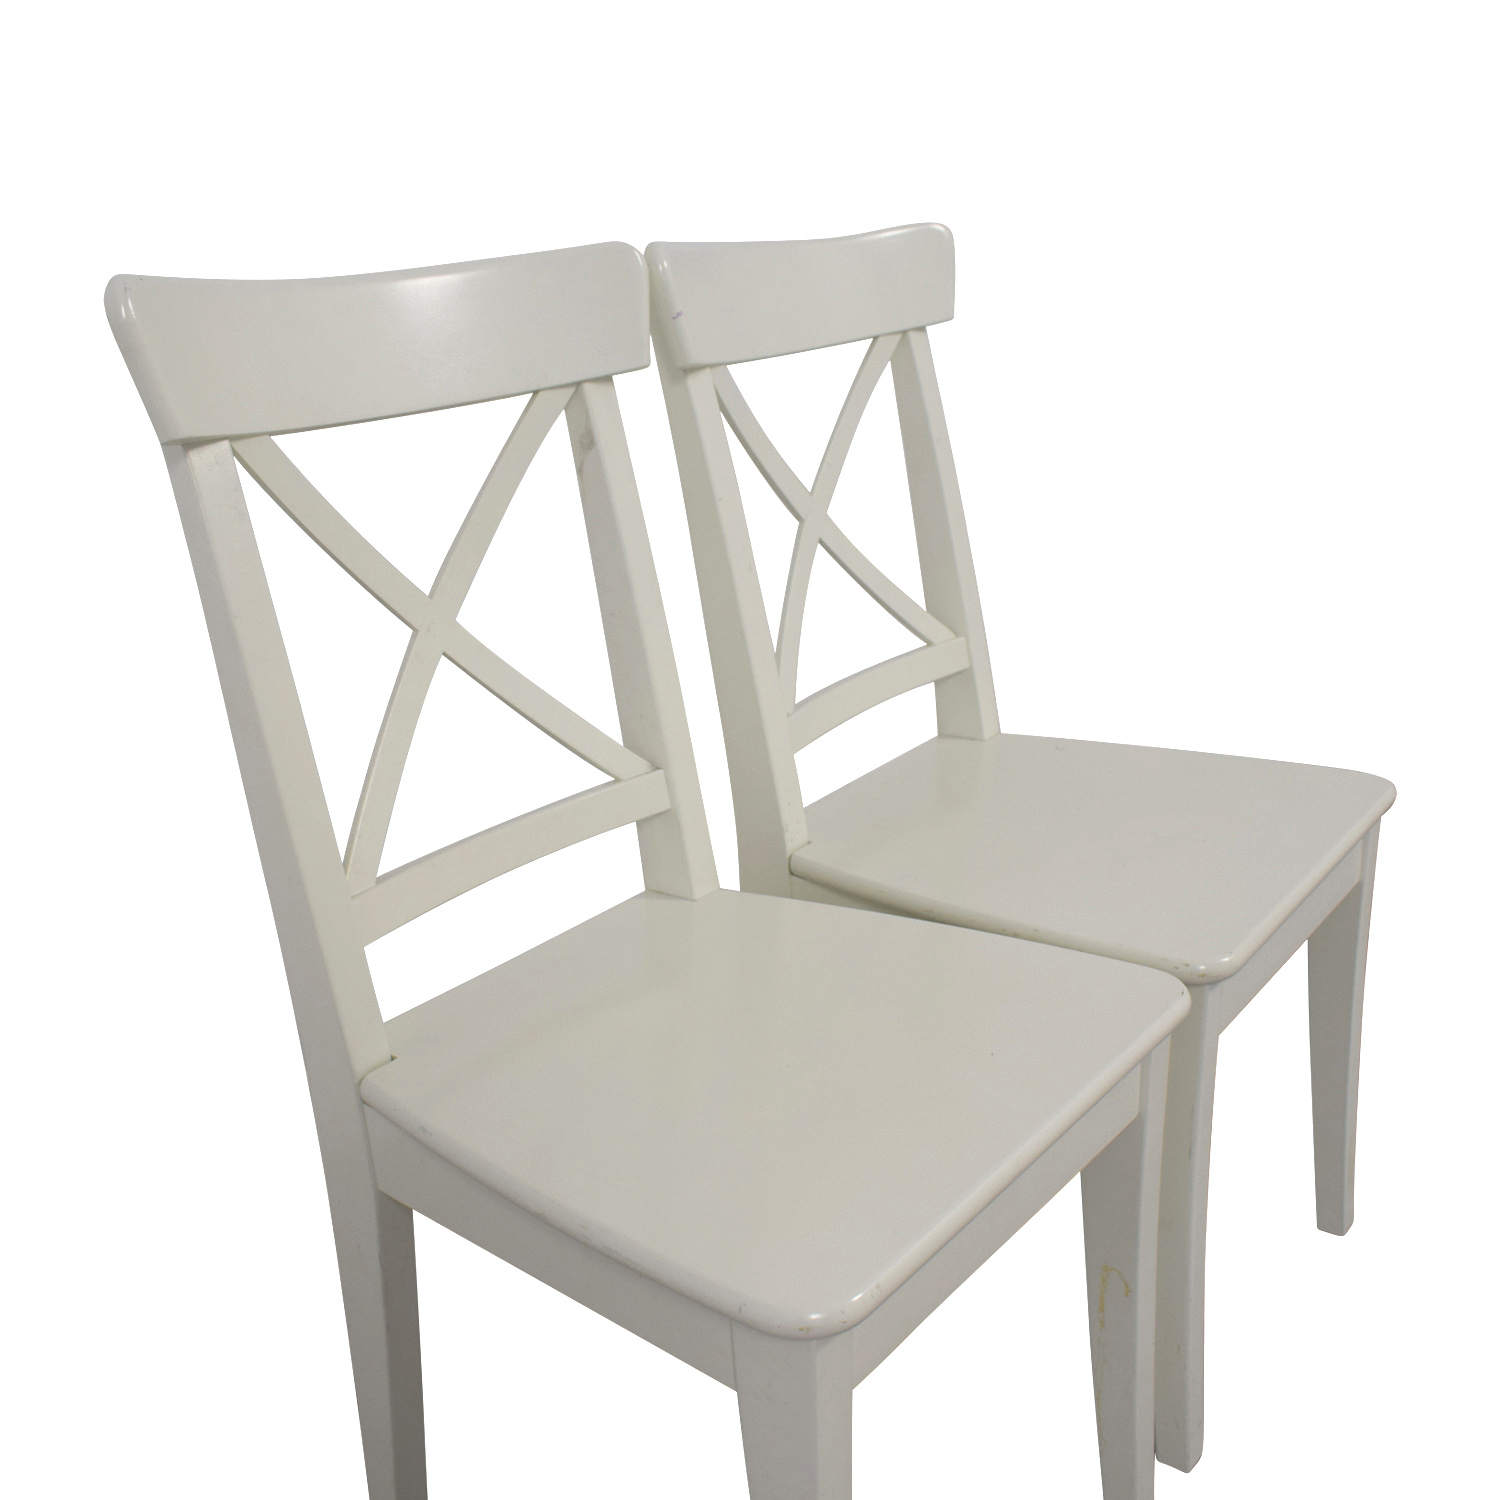 90 Off Ikea Ikea Ingolf Chairs Chairs